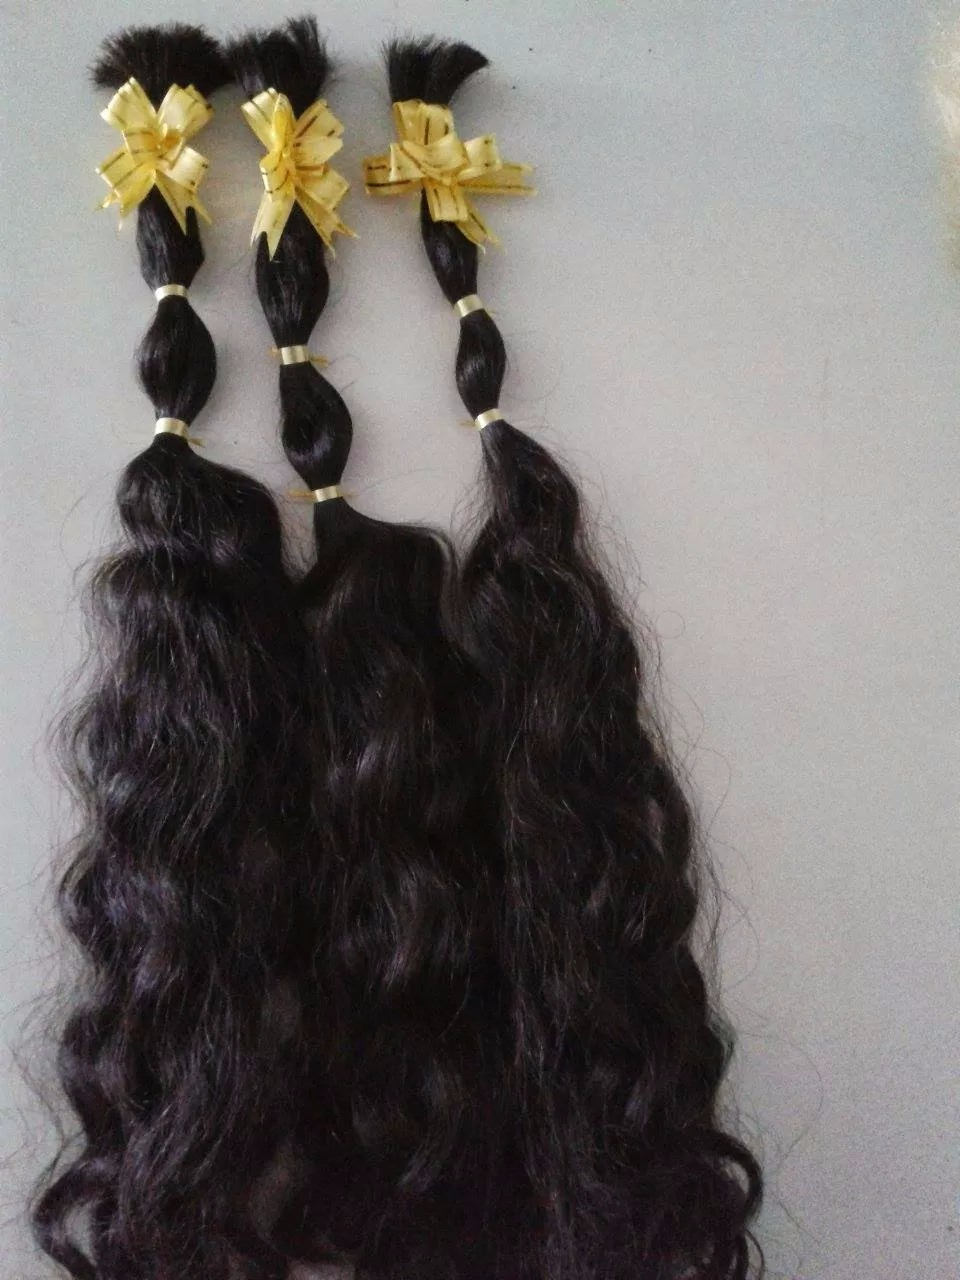 100 remy hairindian human hairfactory price list view hair 100 remy hairindian human hairfactory price list pmusecretfo Gallery